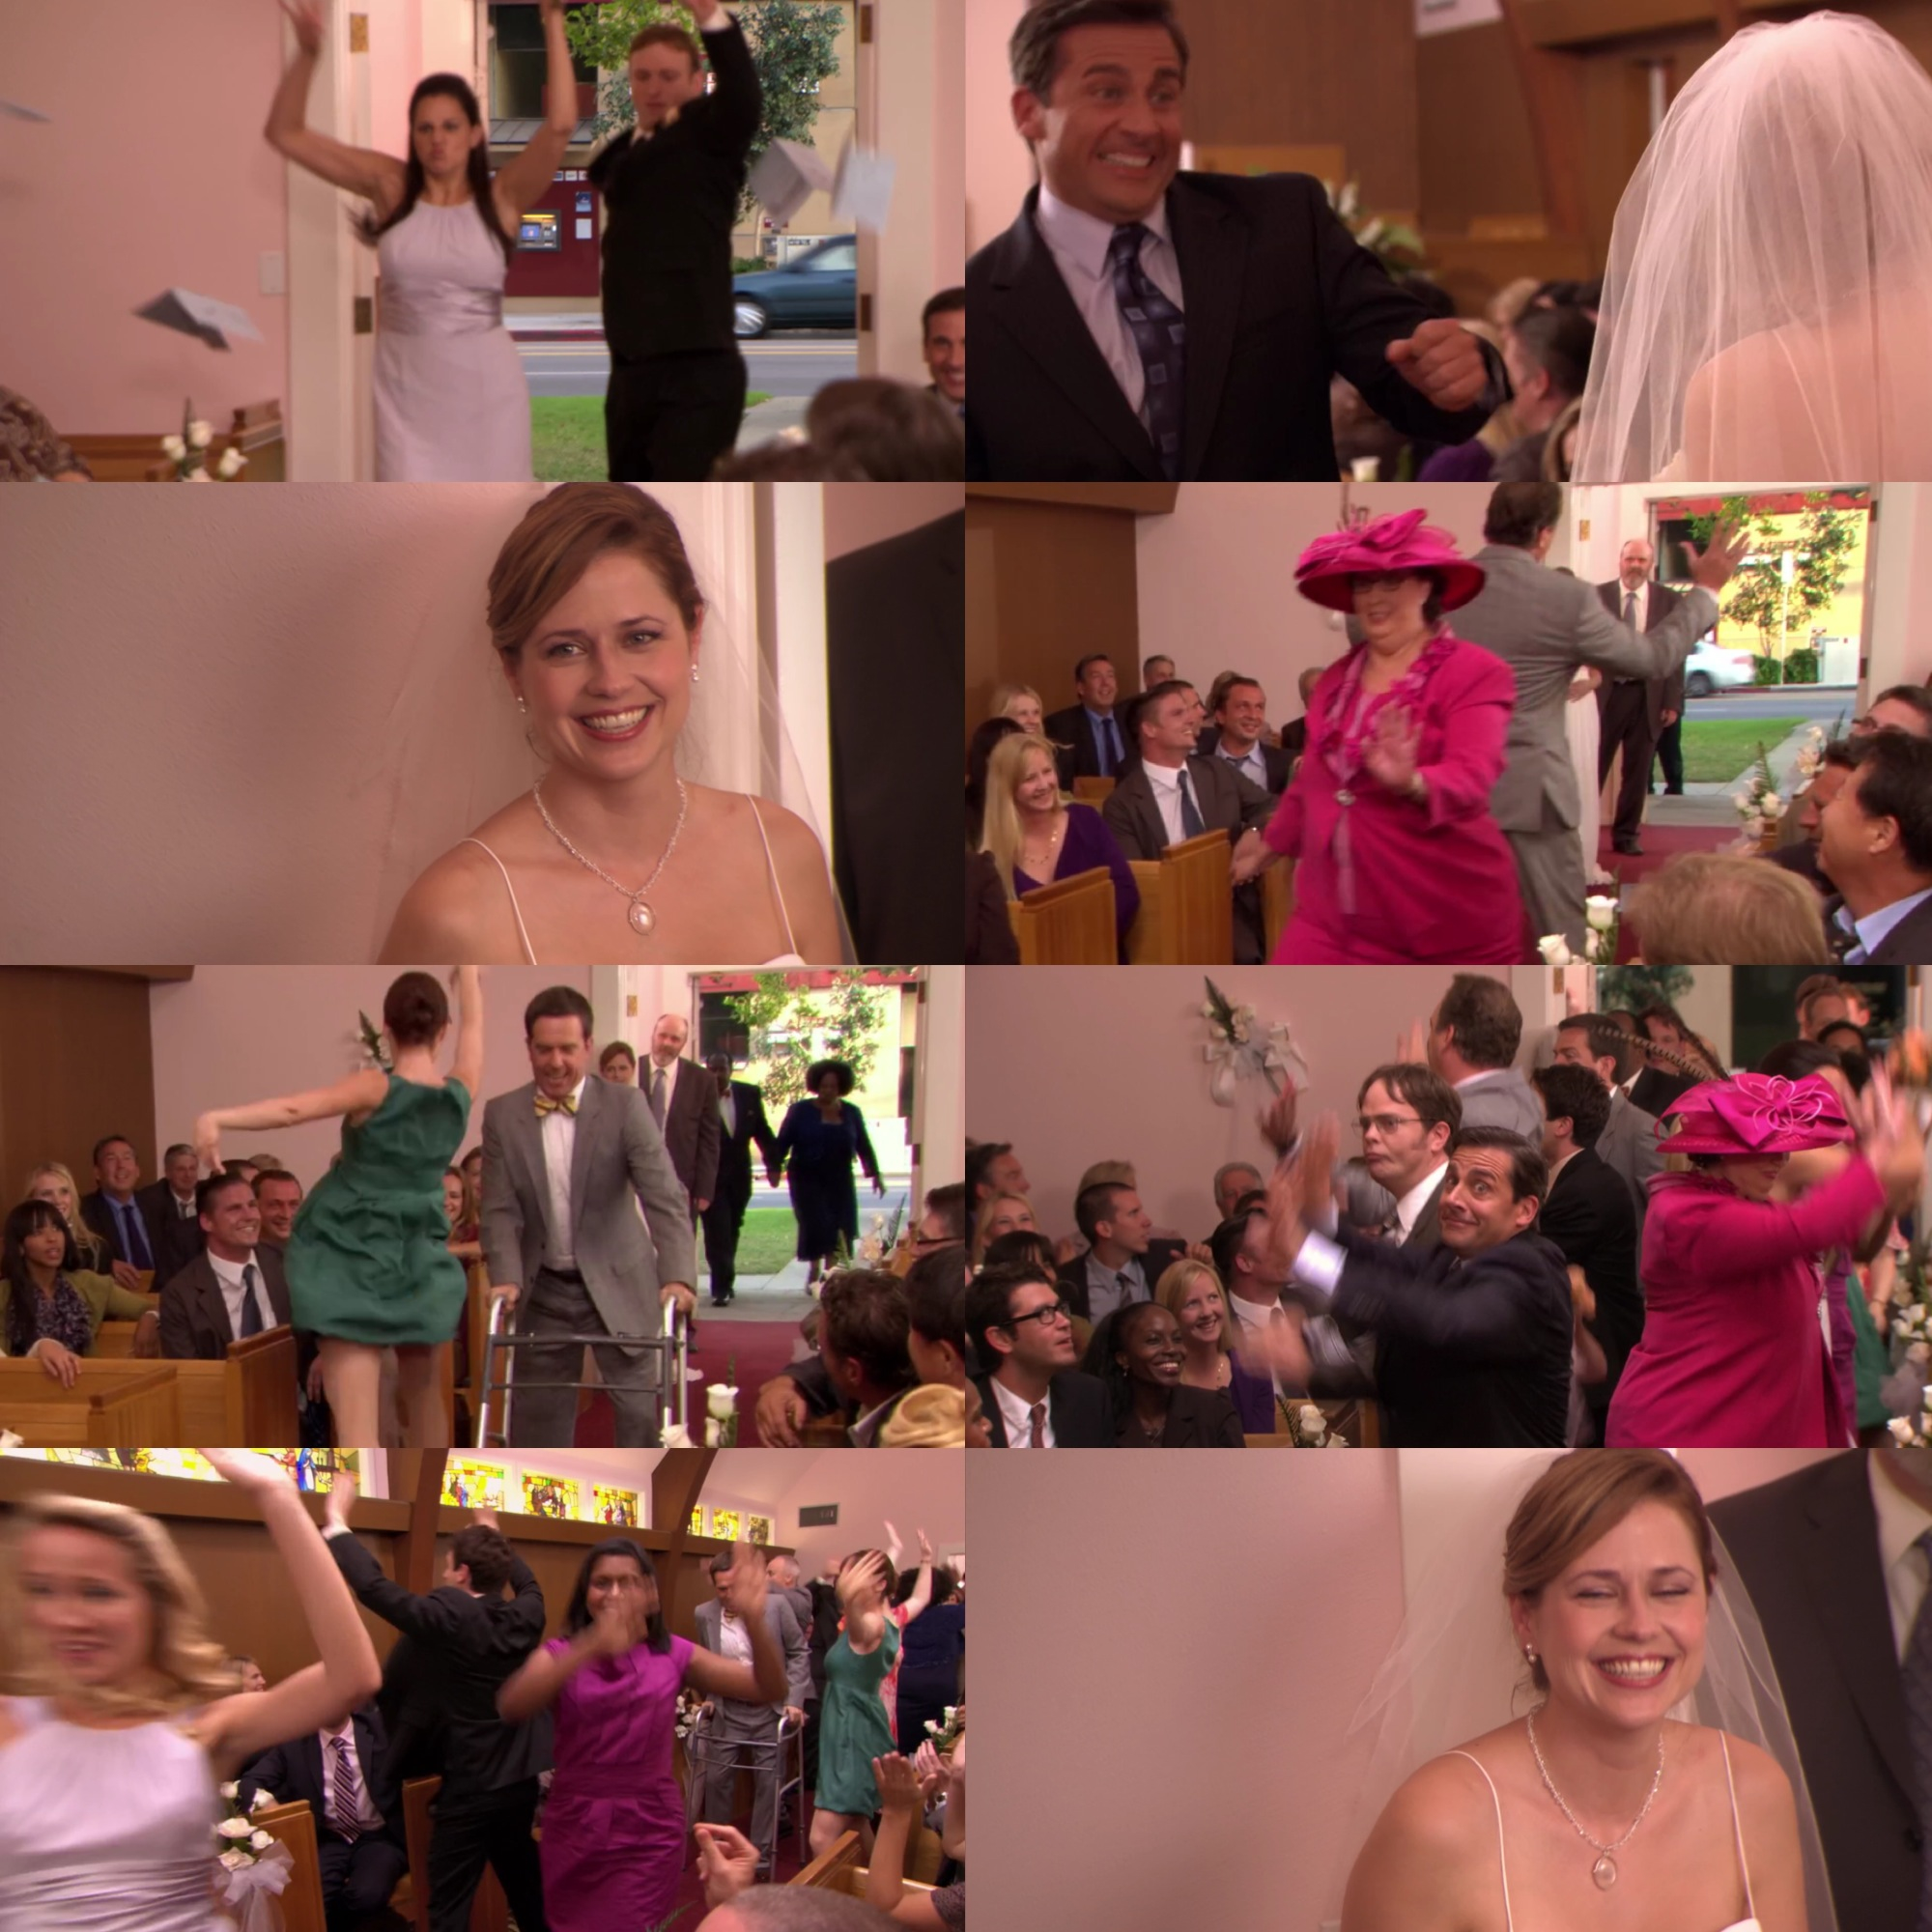 Jim and pam wedding quotes quotesgram